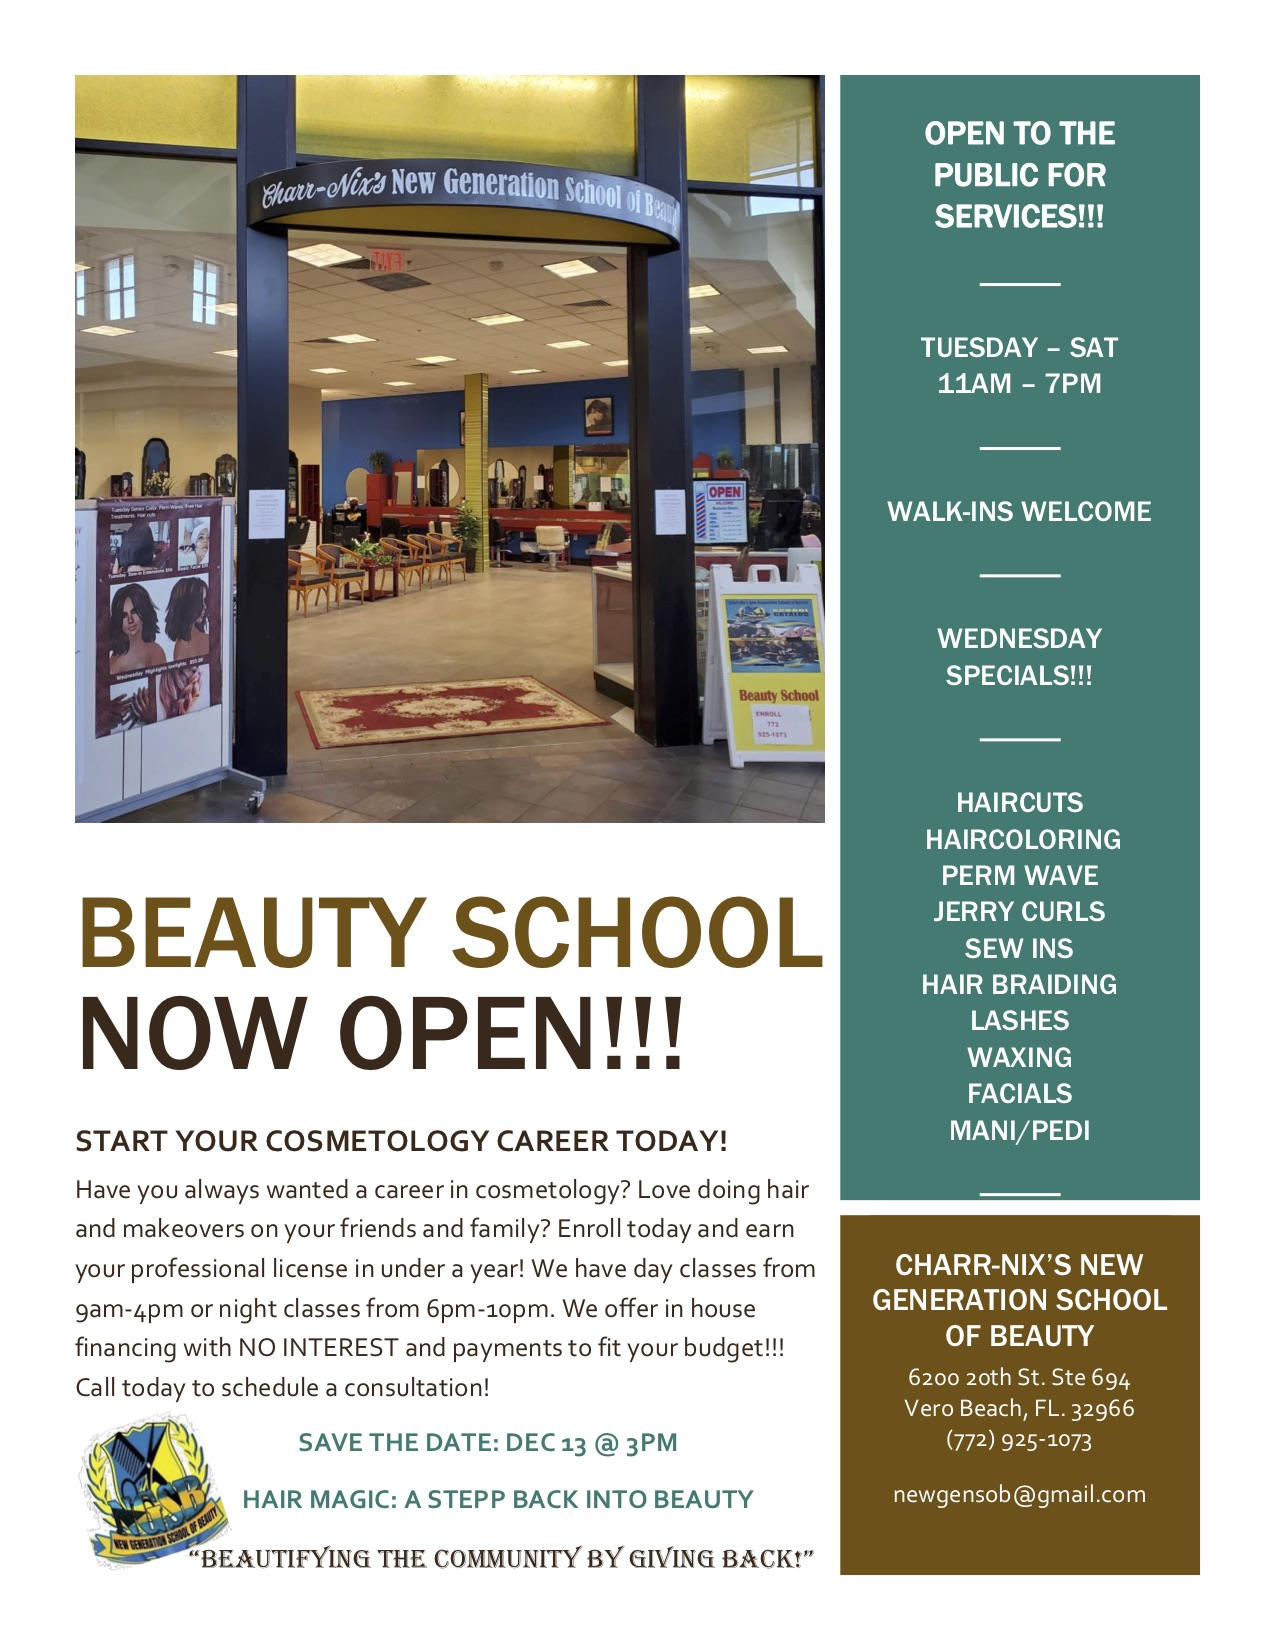 beauty school now open for walk-ins and treatments